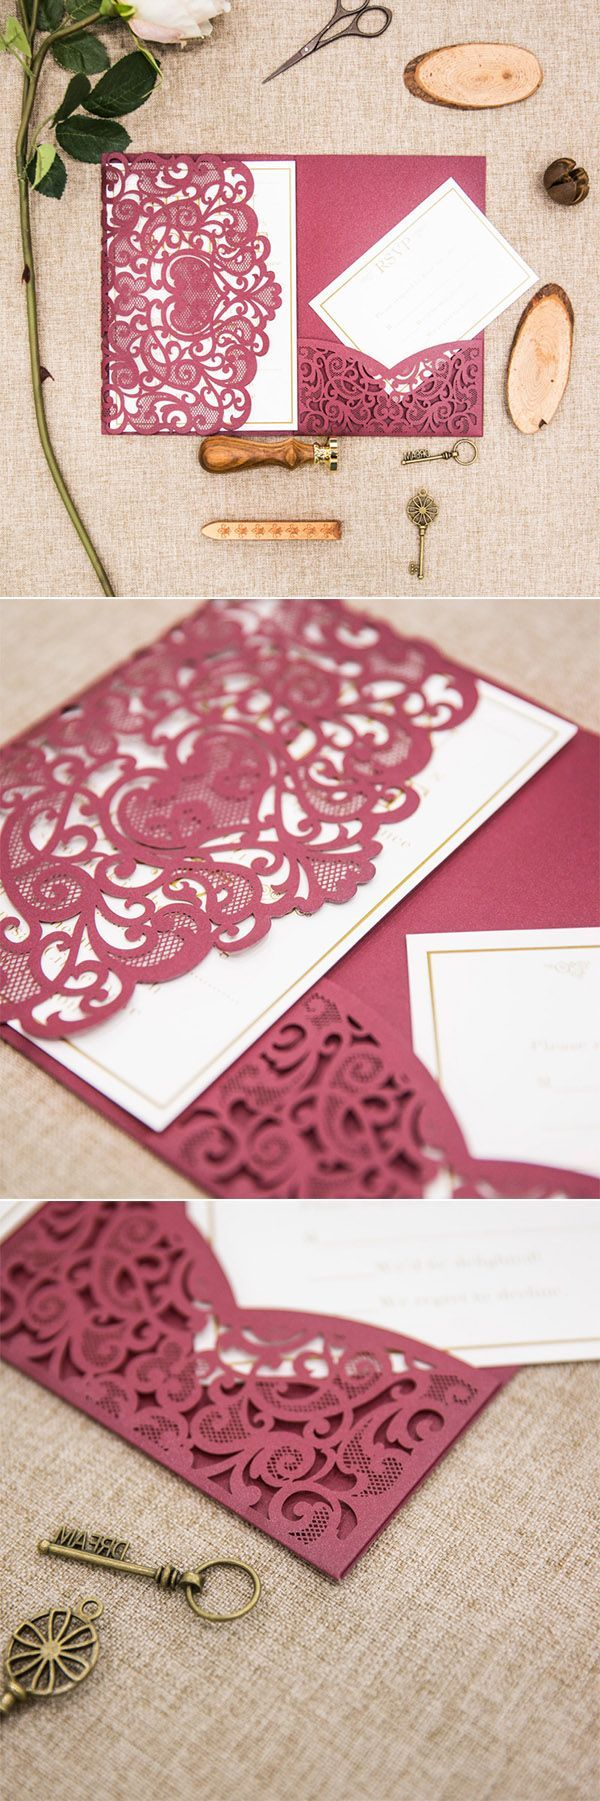 Elegant Fall Burgundy And Gold Heart Laser Cut Pocket Wedding